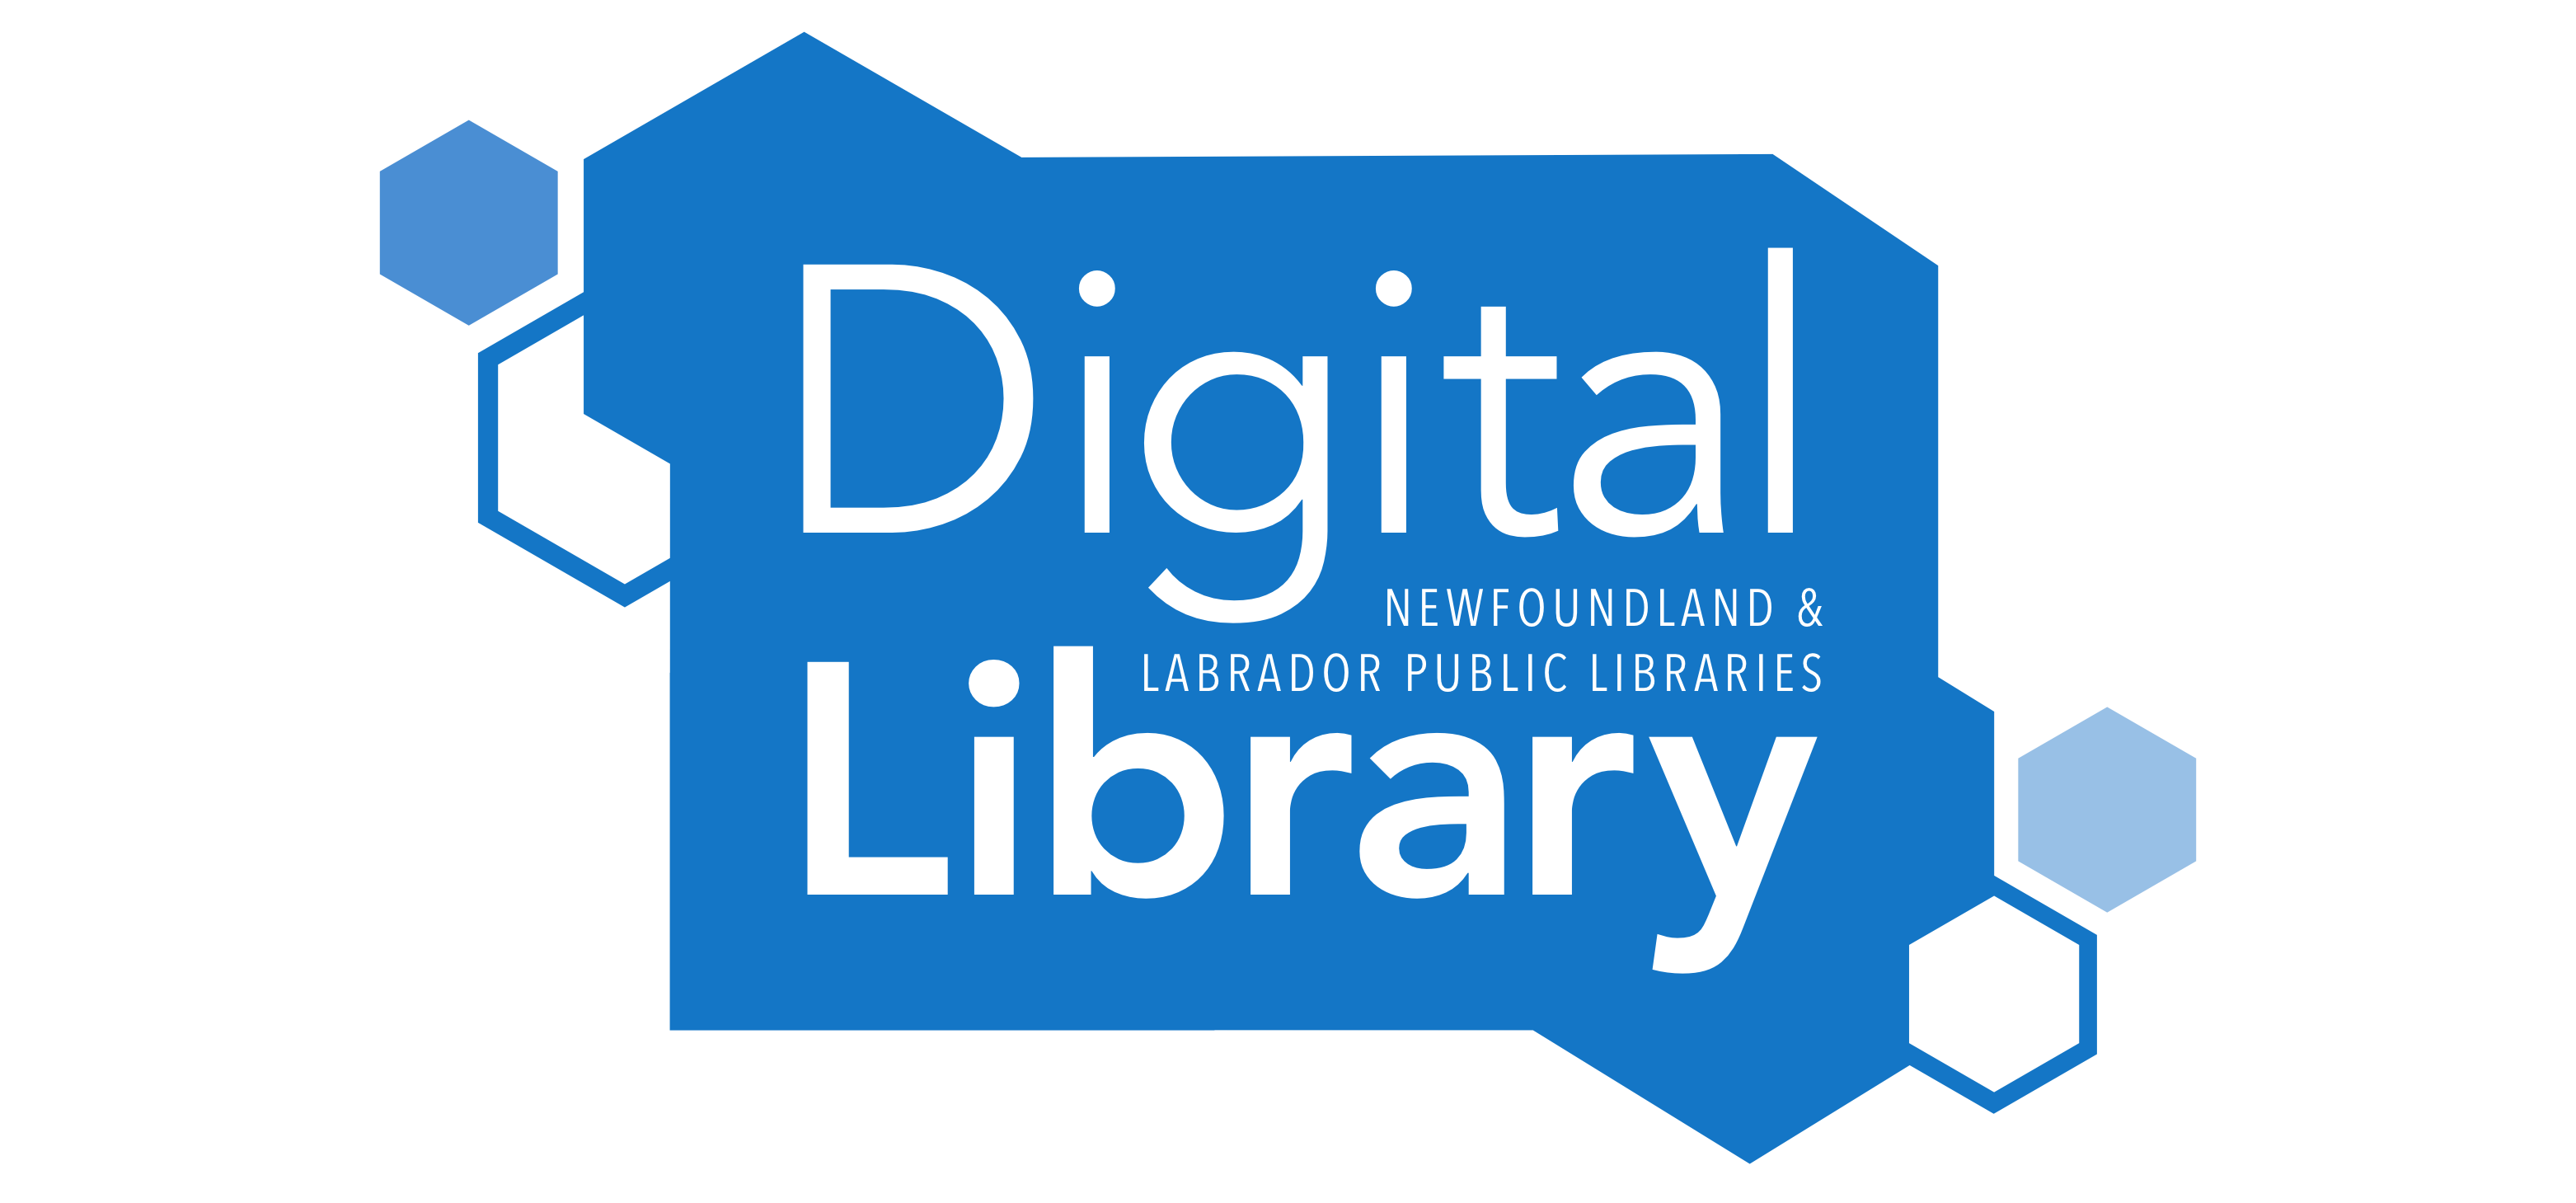 Other Online Resources | Digital Library - Newfoundland and Labrador